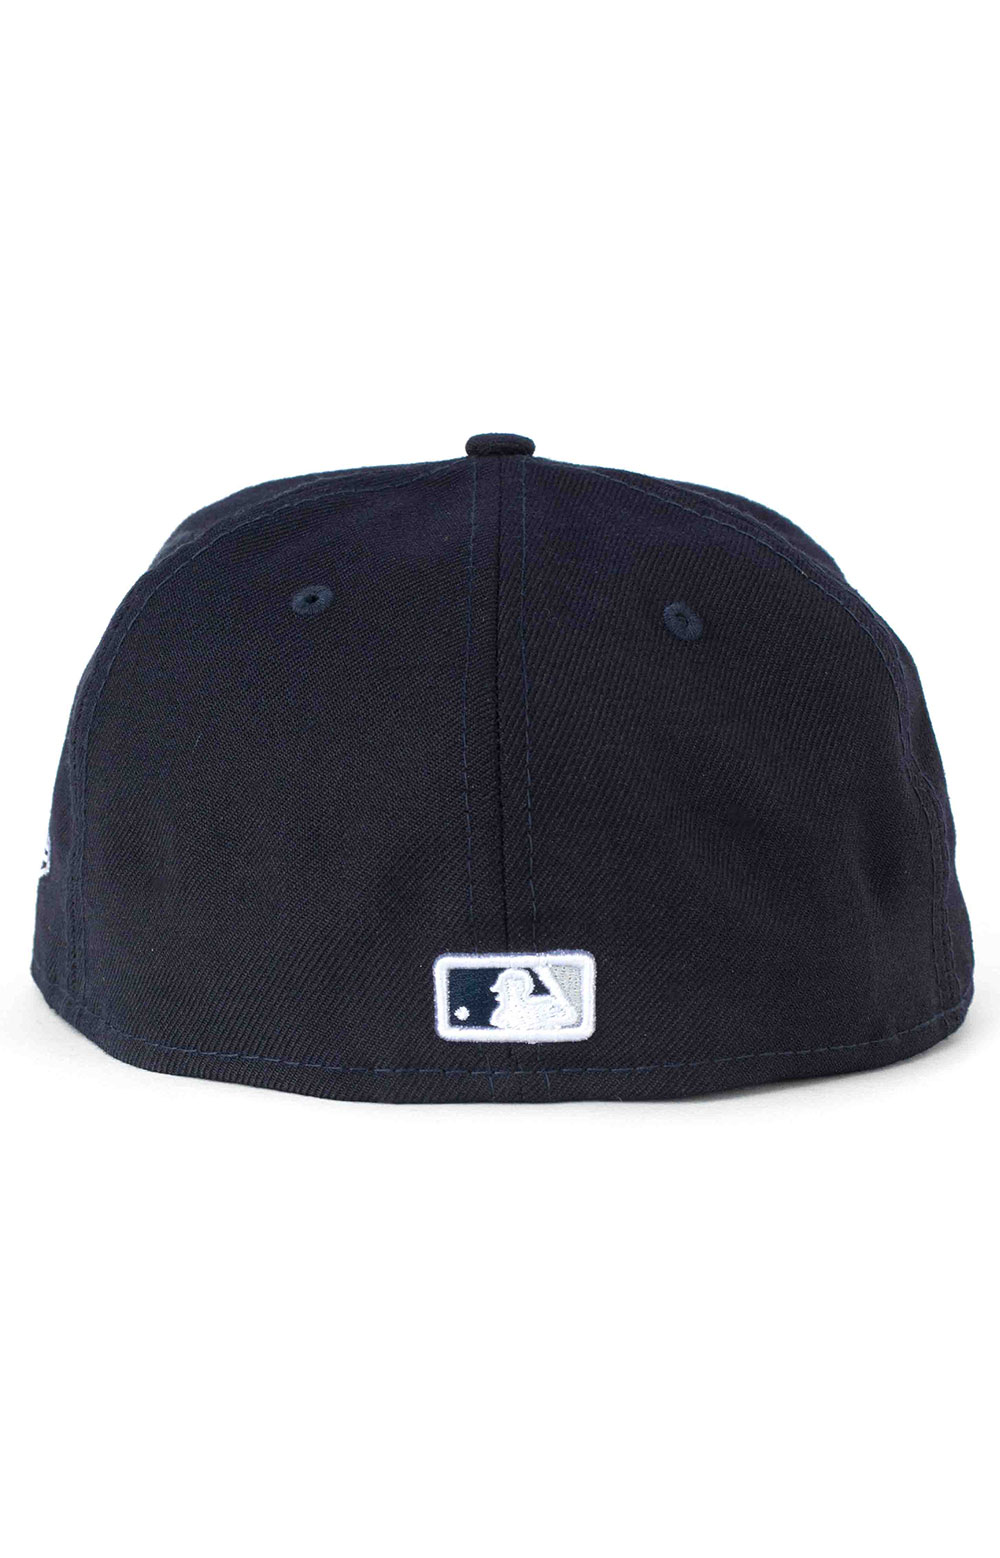 Detroit Tigers City Nicknames 59Fifty Fitted Hat - Navy 3